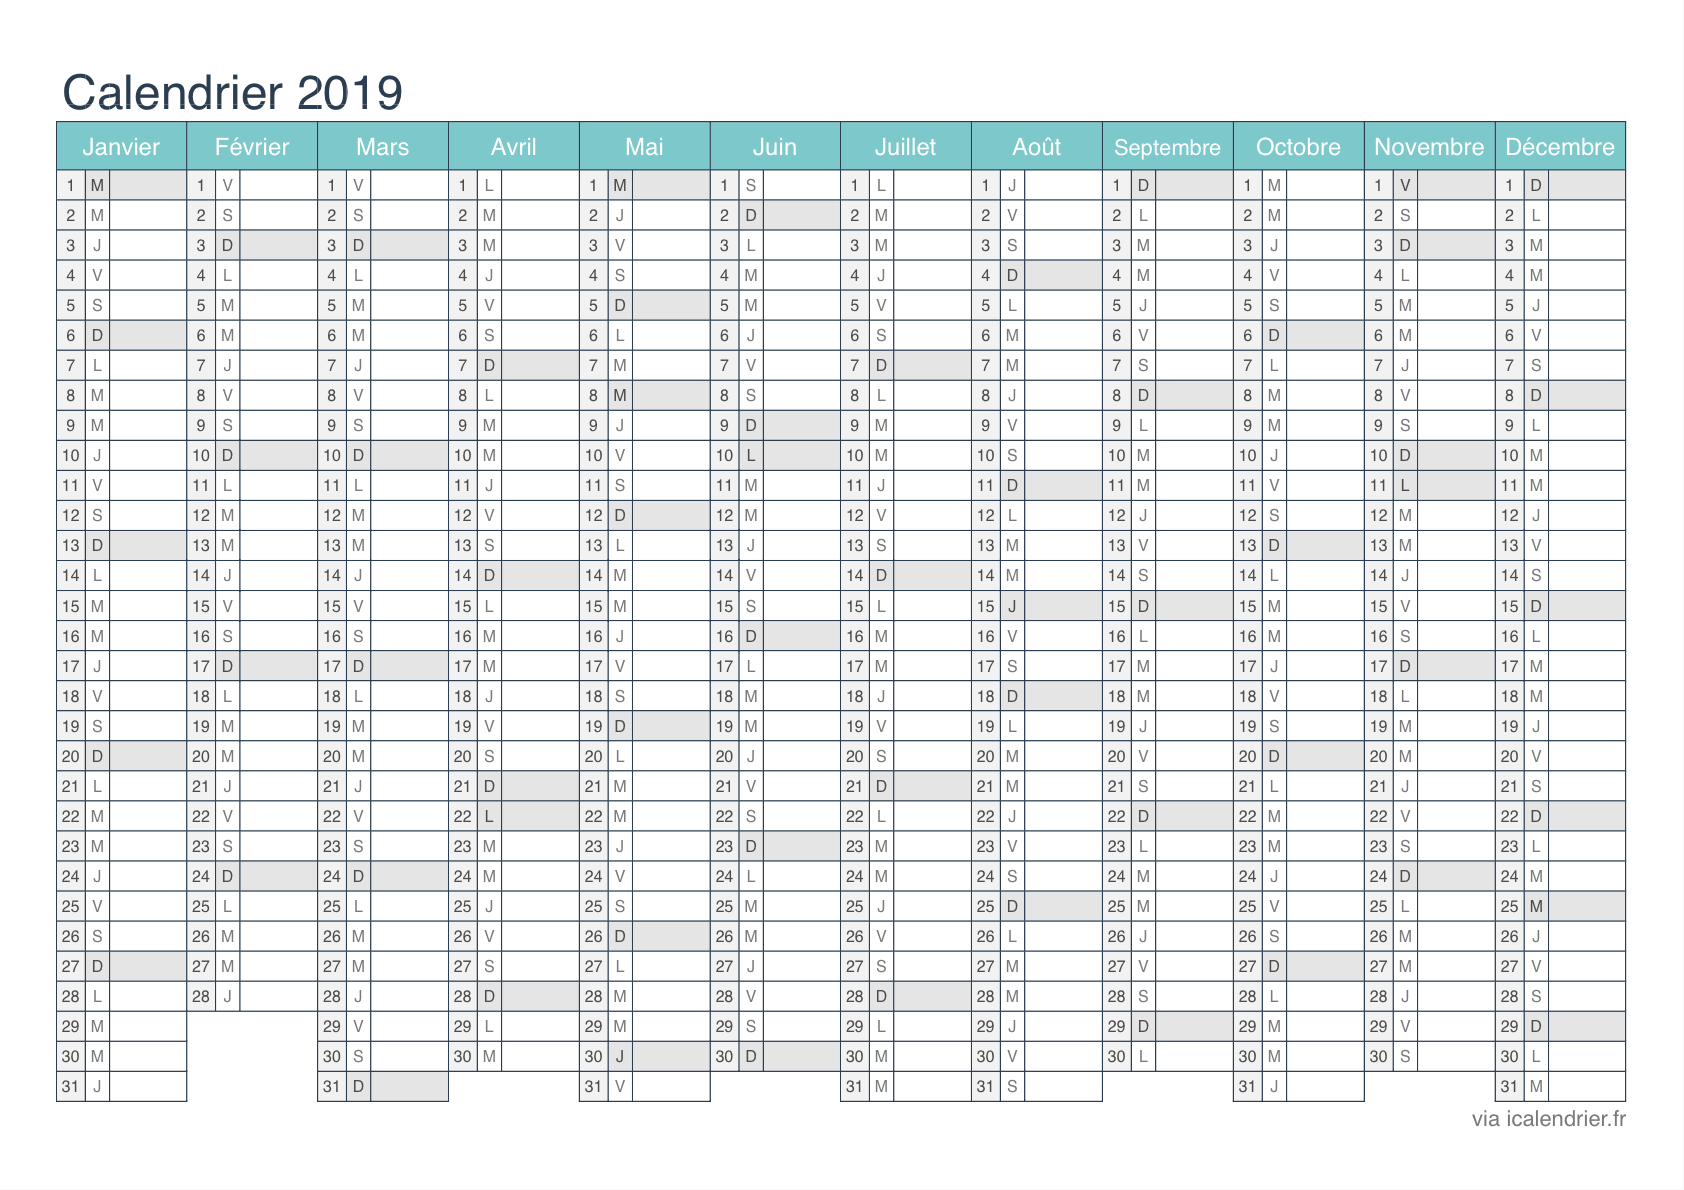 Calendrier 2020 Semaine Numerotees.Calendrier 2019 A Imprimer Pdf Et Excel Icalendrier